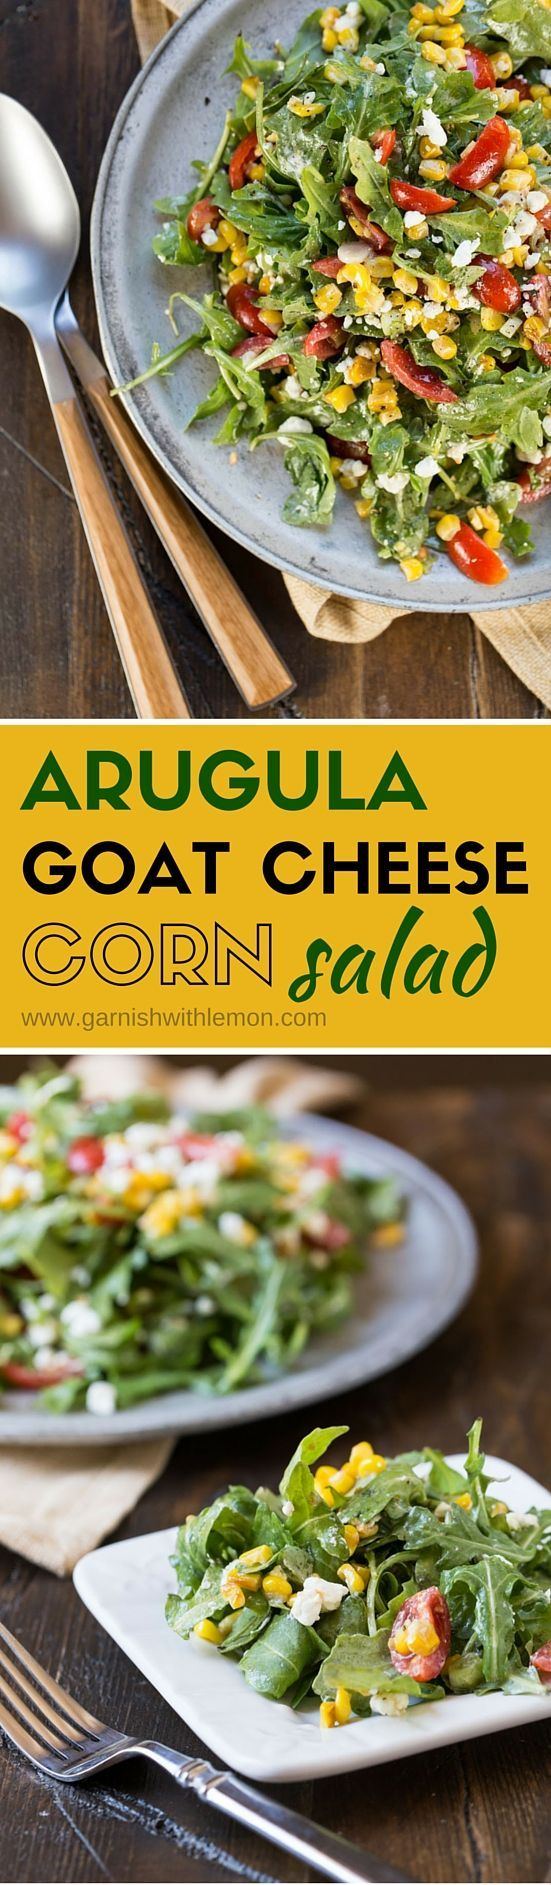 This easy, make-ahead Arugula Goat Cheese Corn Salad has a simple ingredient list that is packed with flavor! Don't have fresh sweet corn? Frozen corn makes a great substitution.